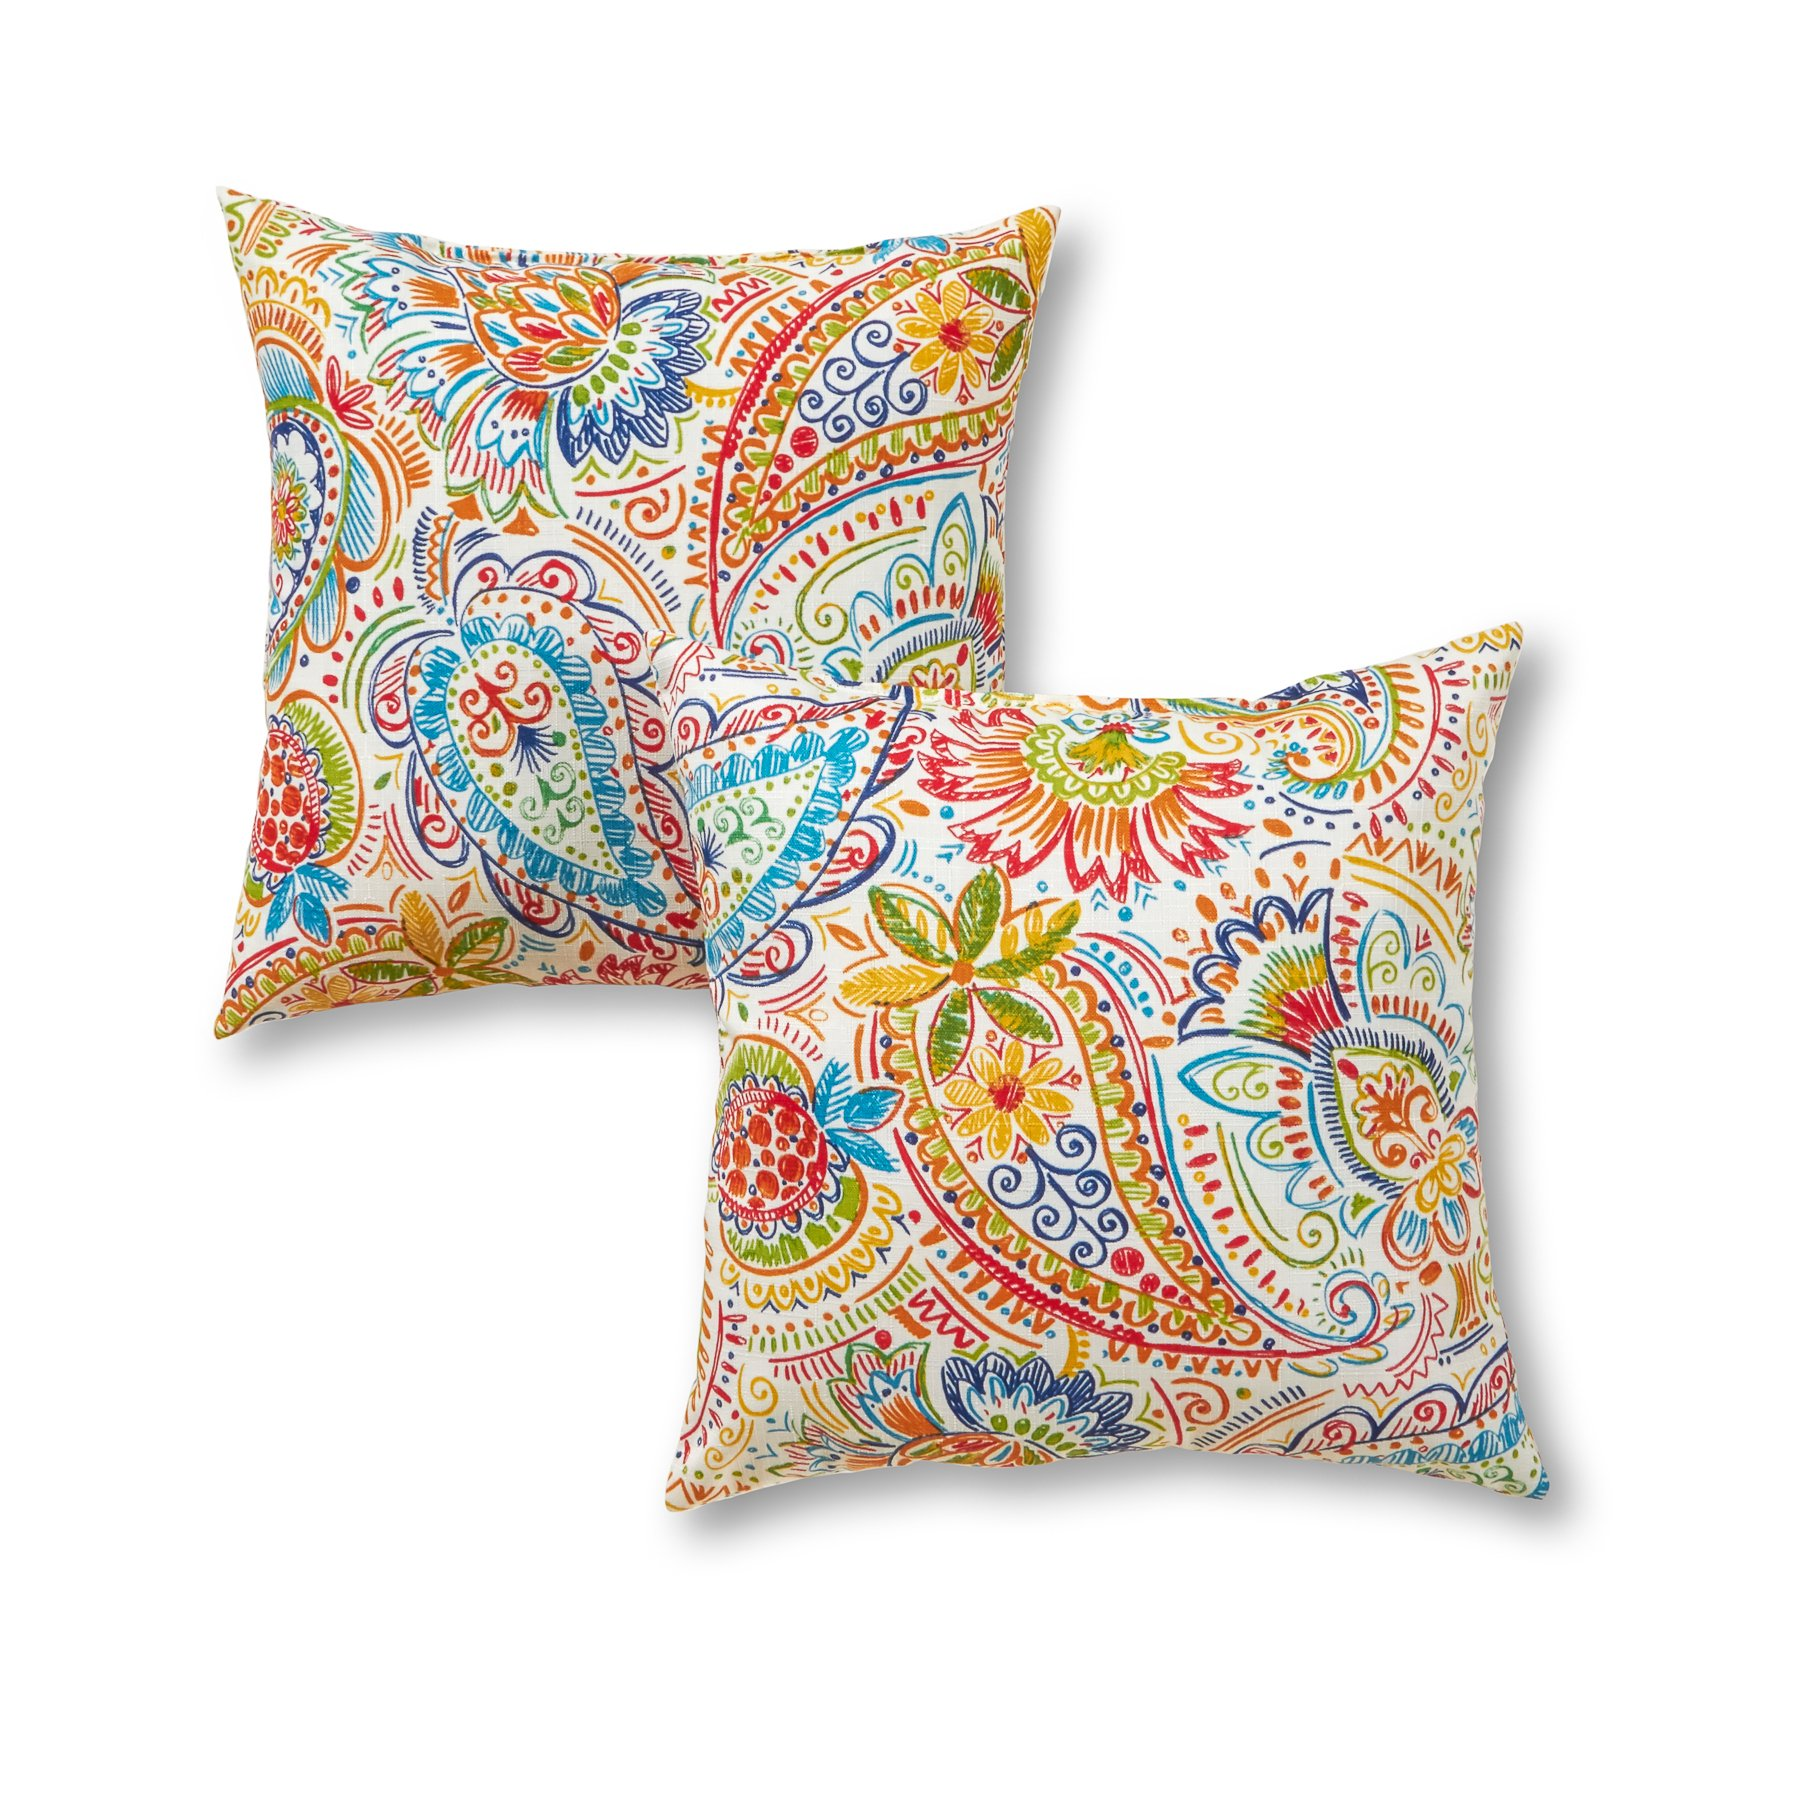 Greendale Home Fashions 17'' Outdoor Accent Pillows in Painted Paisley (Set of 2), Jamboree